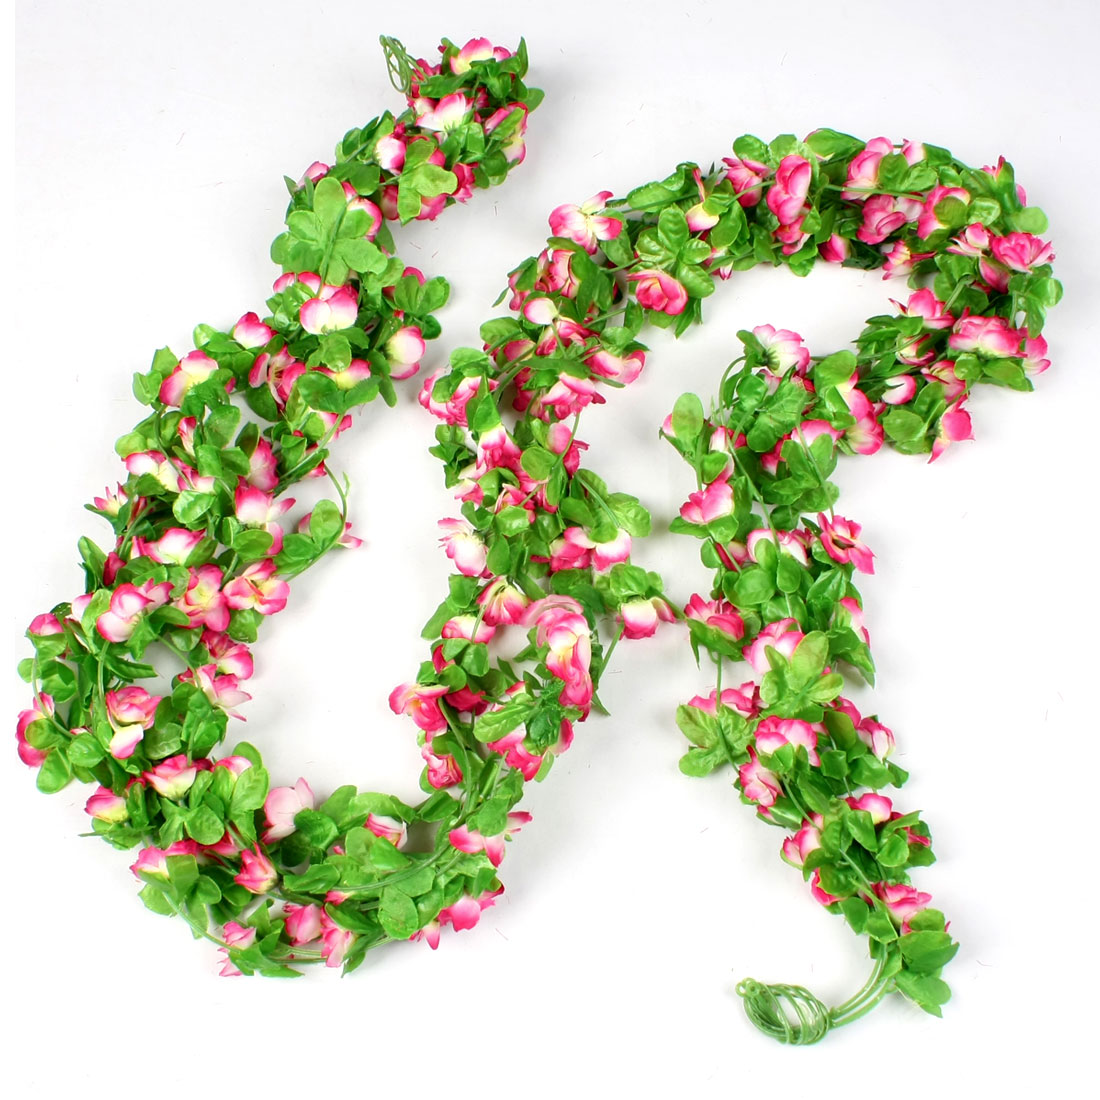 5 Pcs 2.2M Long Simulation Ornament Green Leaf Fabric Flower Ivy Yellow Magenta White